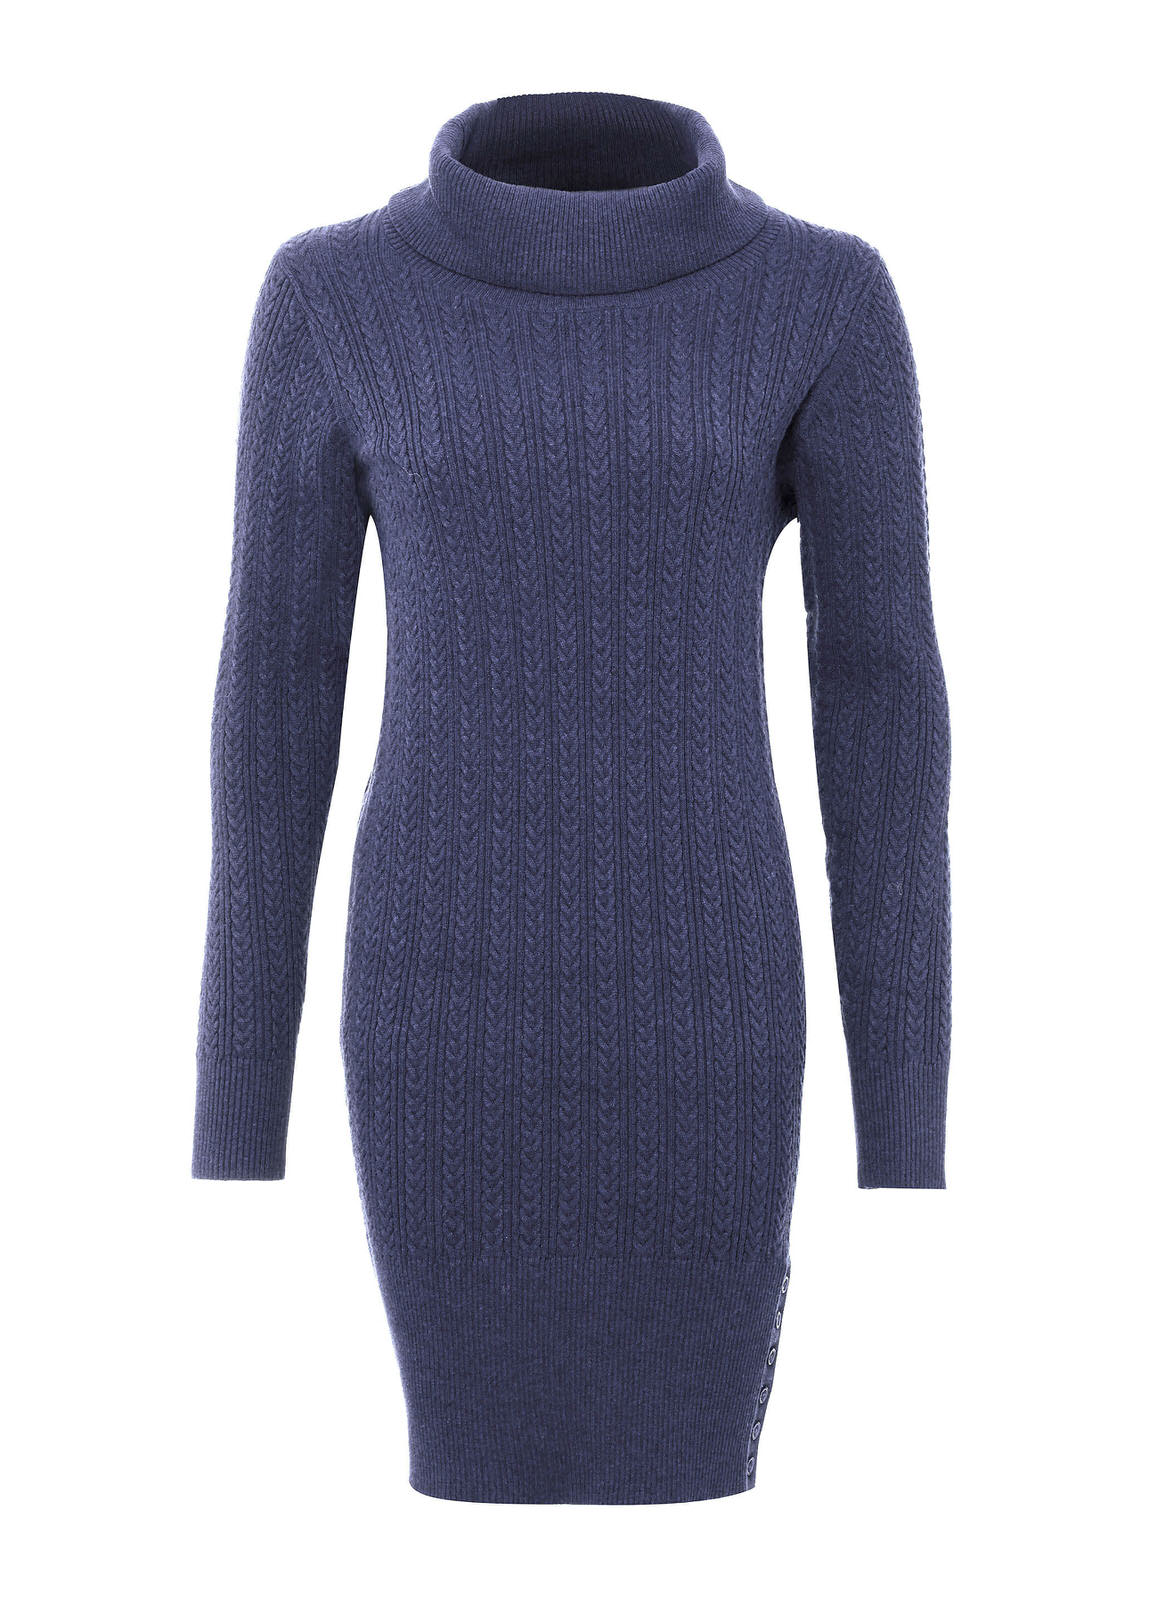 Westport_Sweater_dress_French_Navy_Image_1